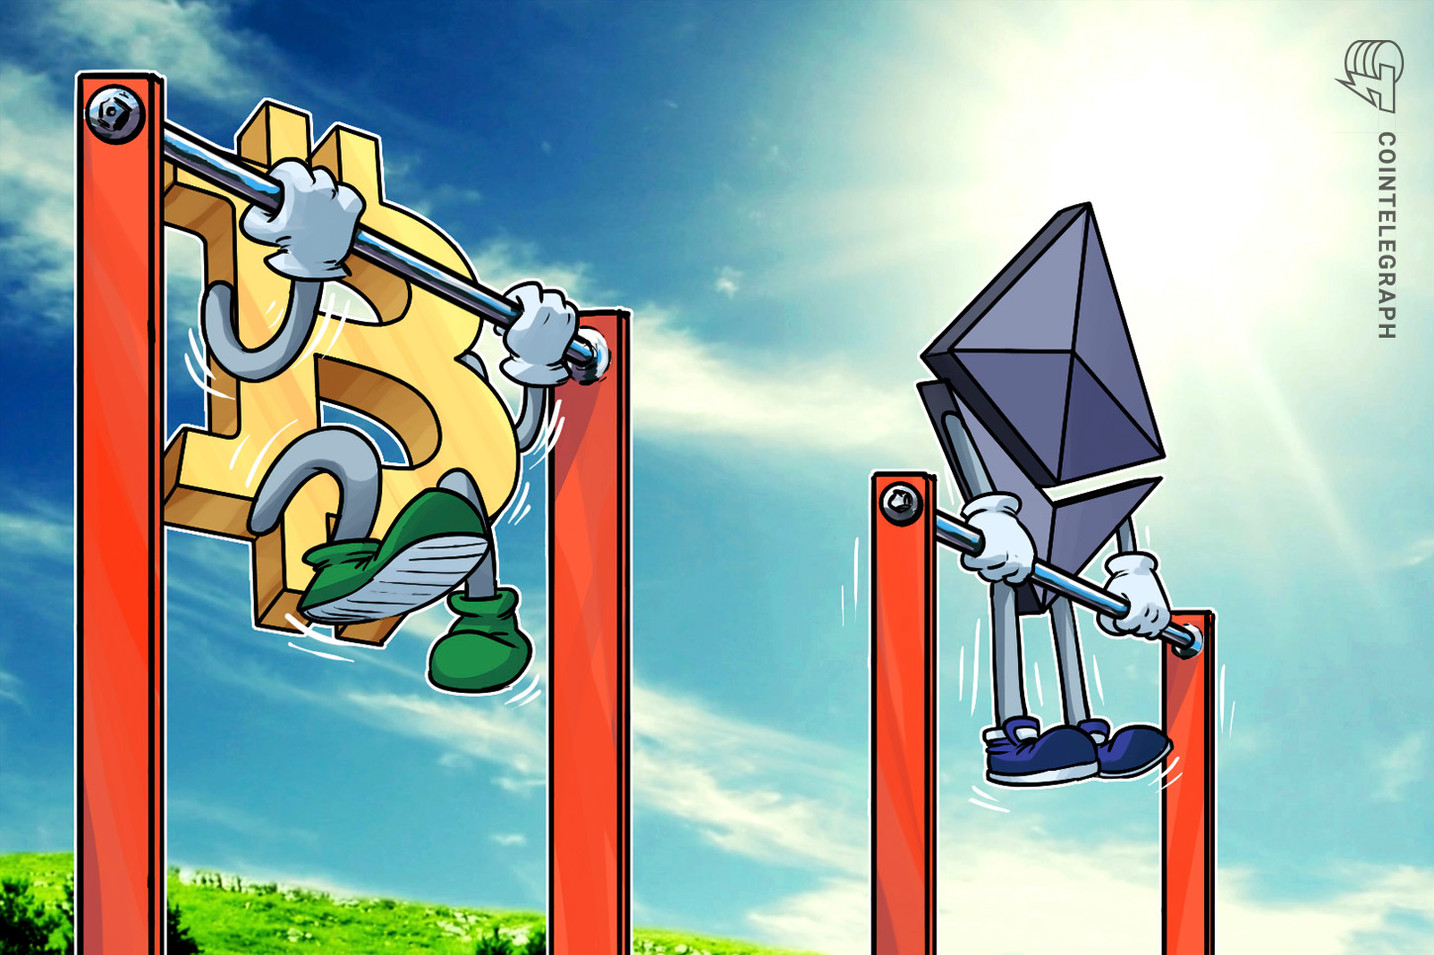 Ethereum is struggling again vs. Bitcoin: Why is ETH/BTC showing weakness?